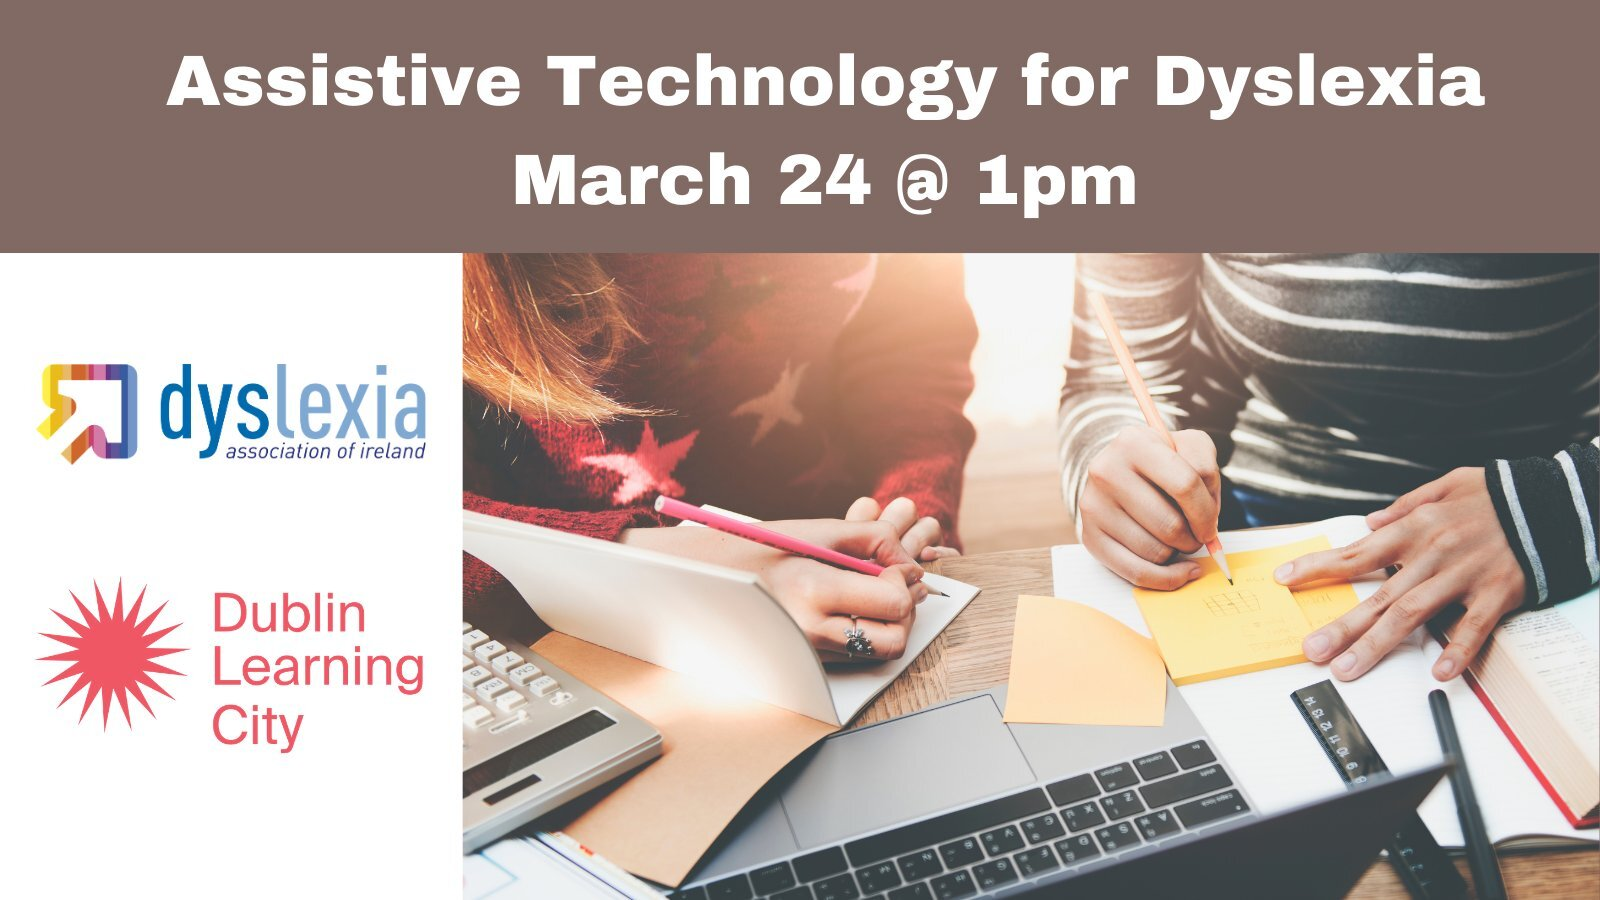 DIA Assistive Technology Event poster